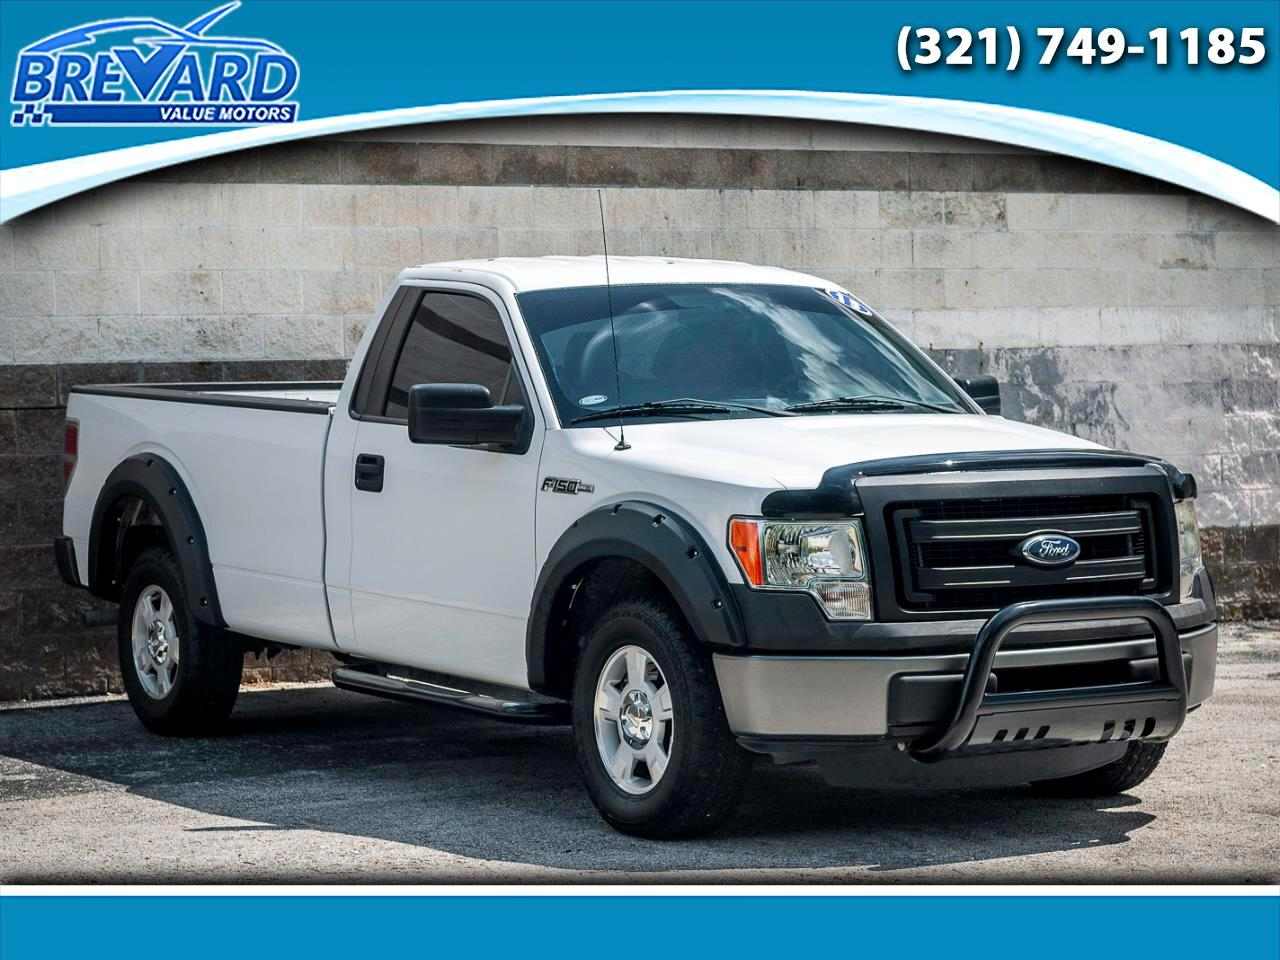 2013 Ford F-150 XLT 8-ft. Bed 2WD